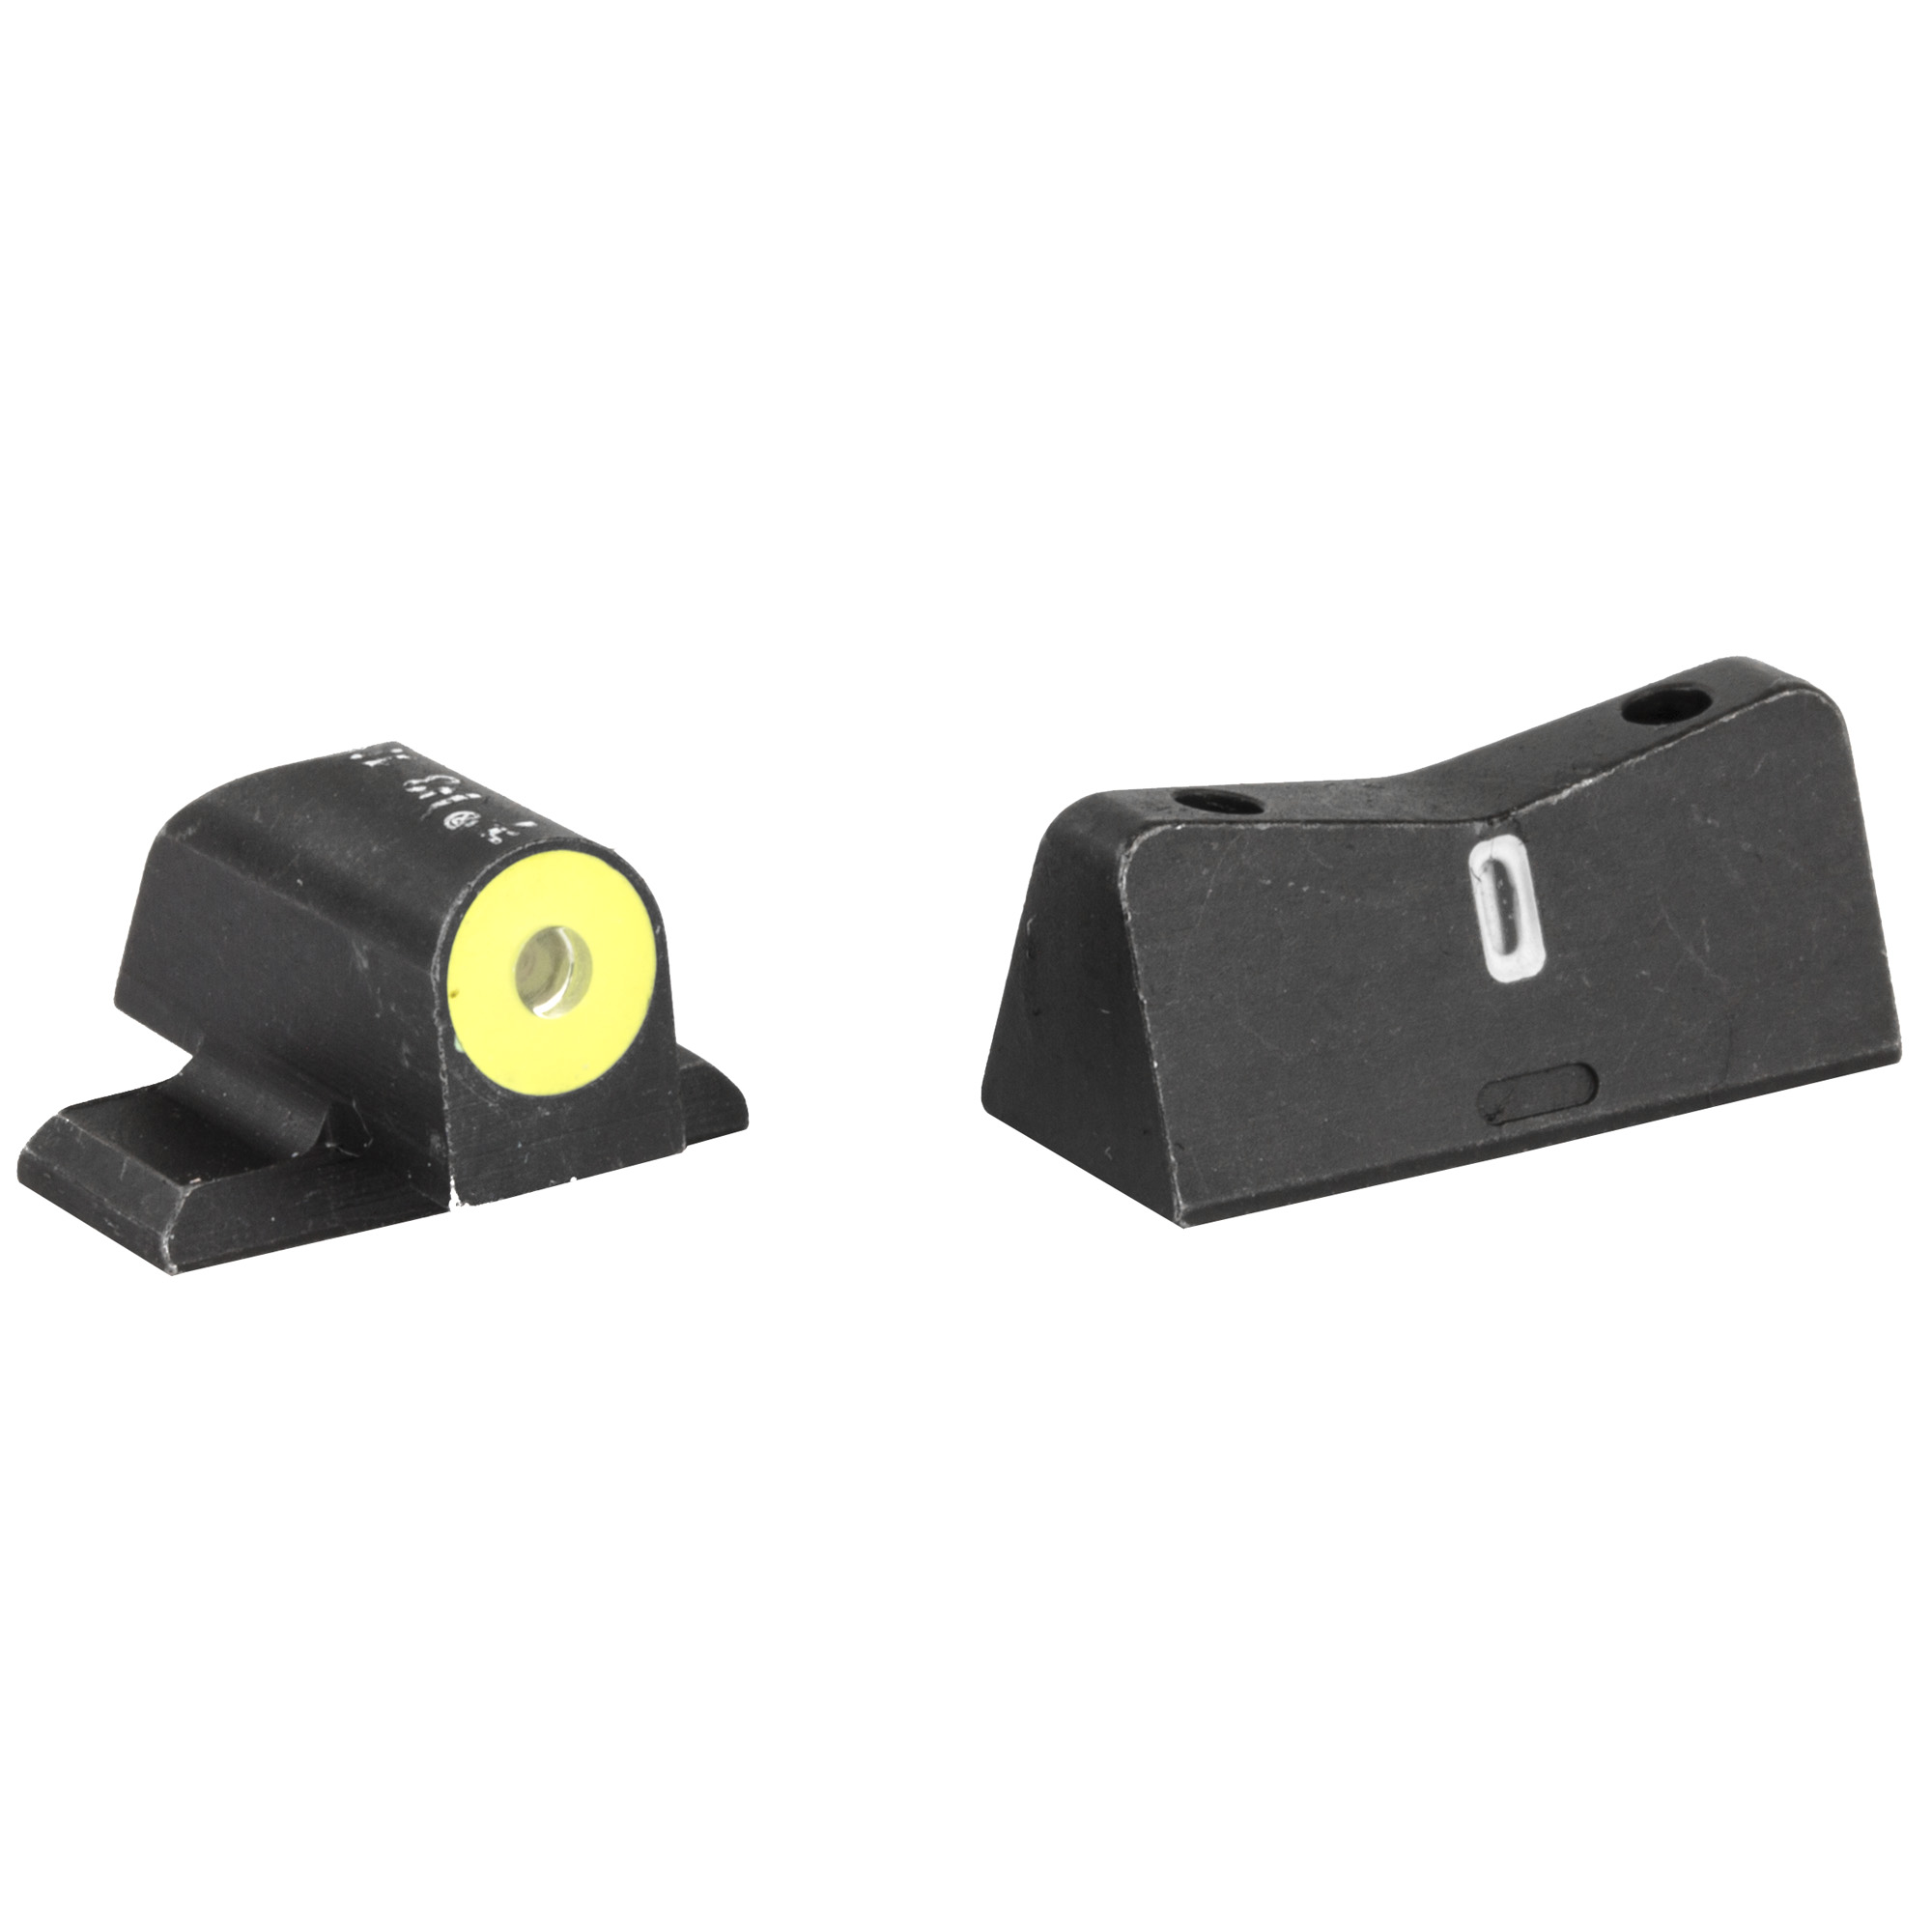 XS Sights DXT2 Big Dot Night Sights Springfield XD's/SIG Sauer P226/P229 Models Green Tritium Front With Yellow Ring/Tritium Stripe Rear